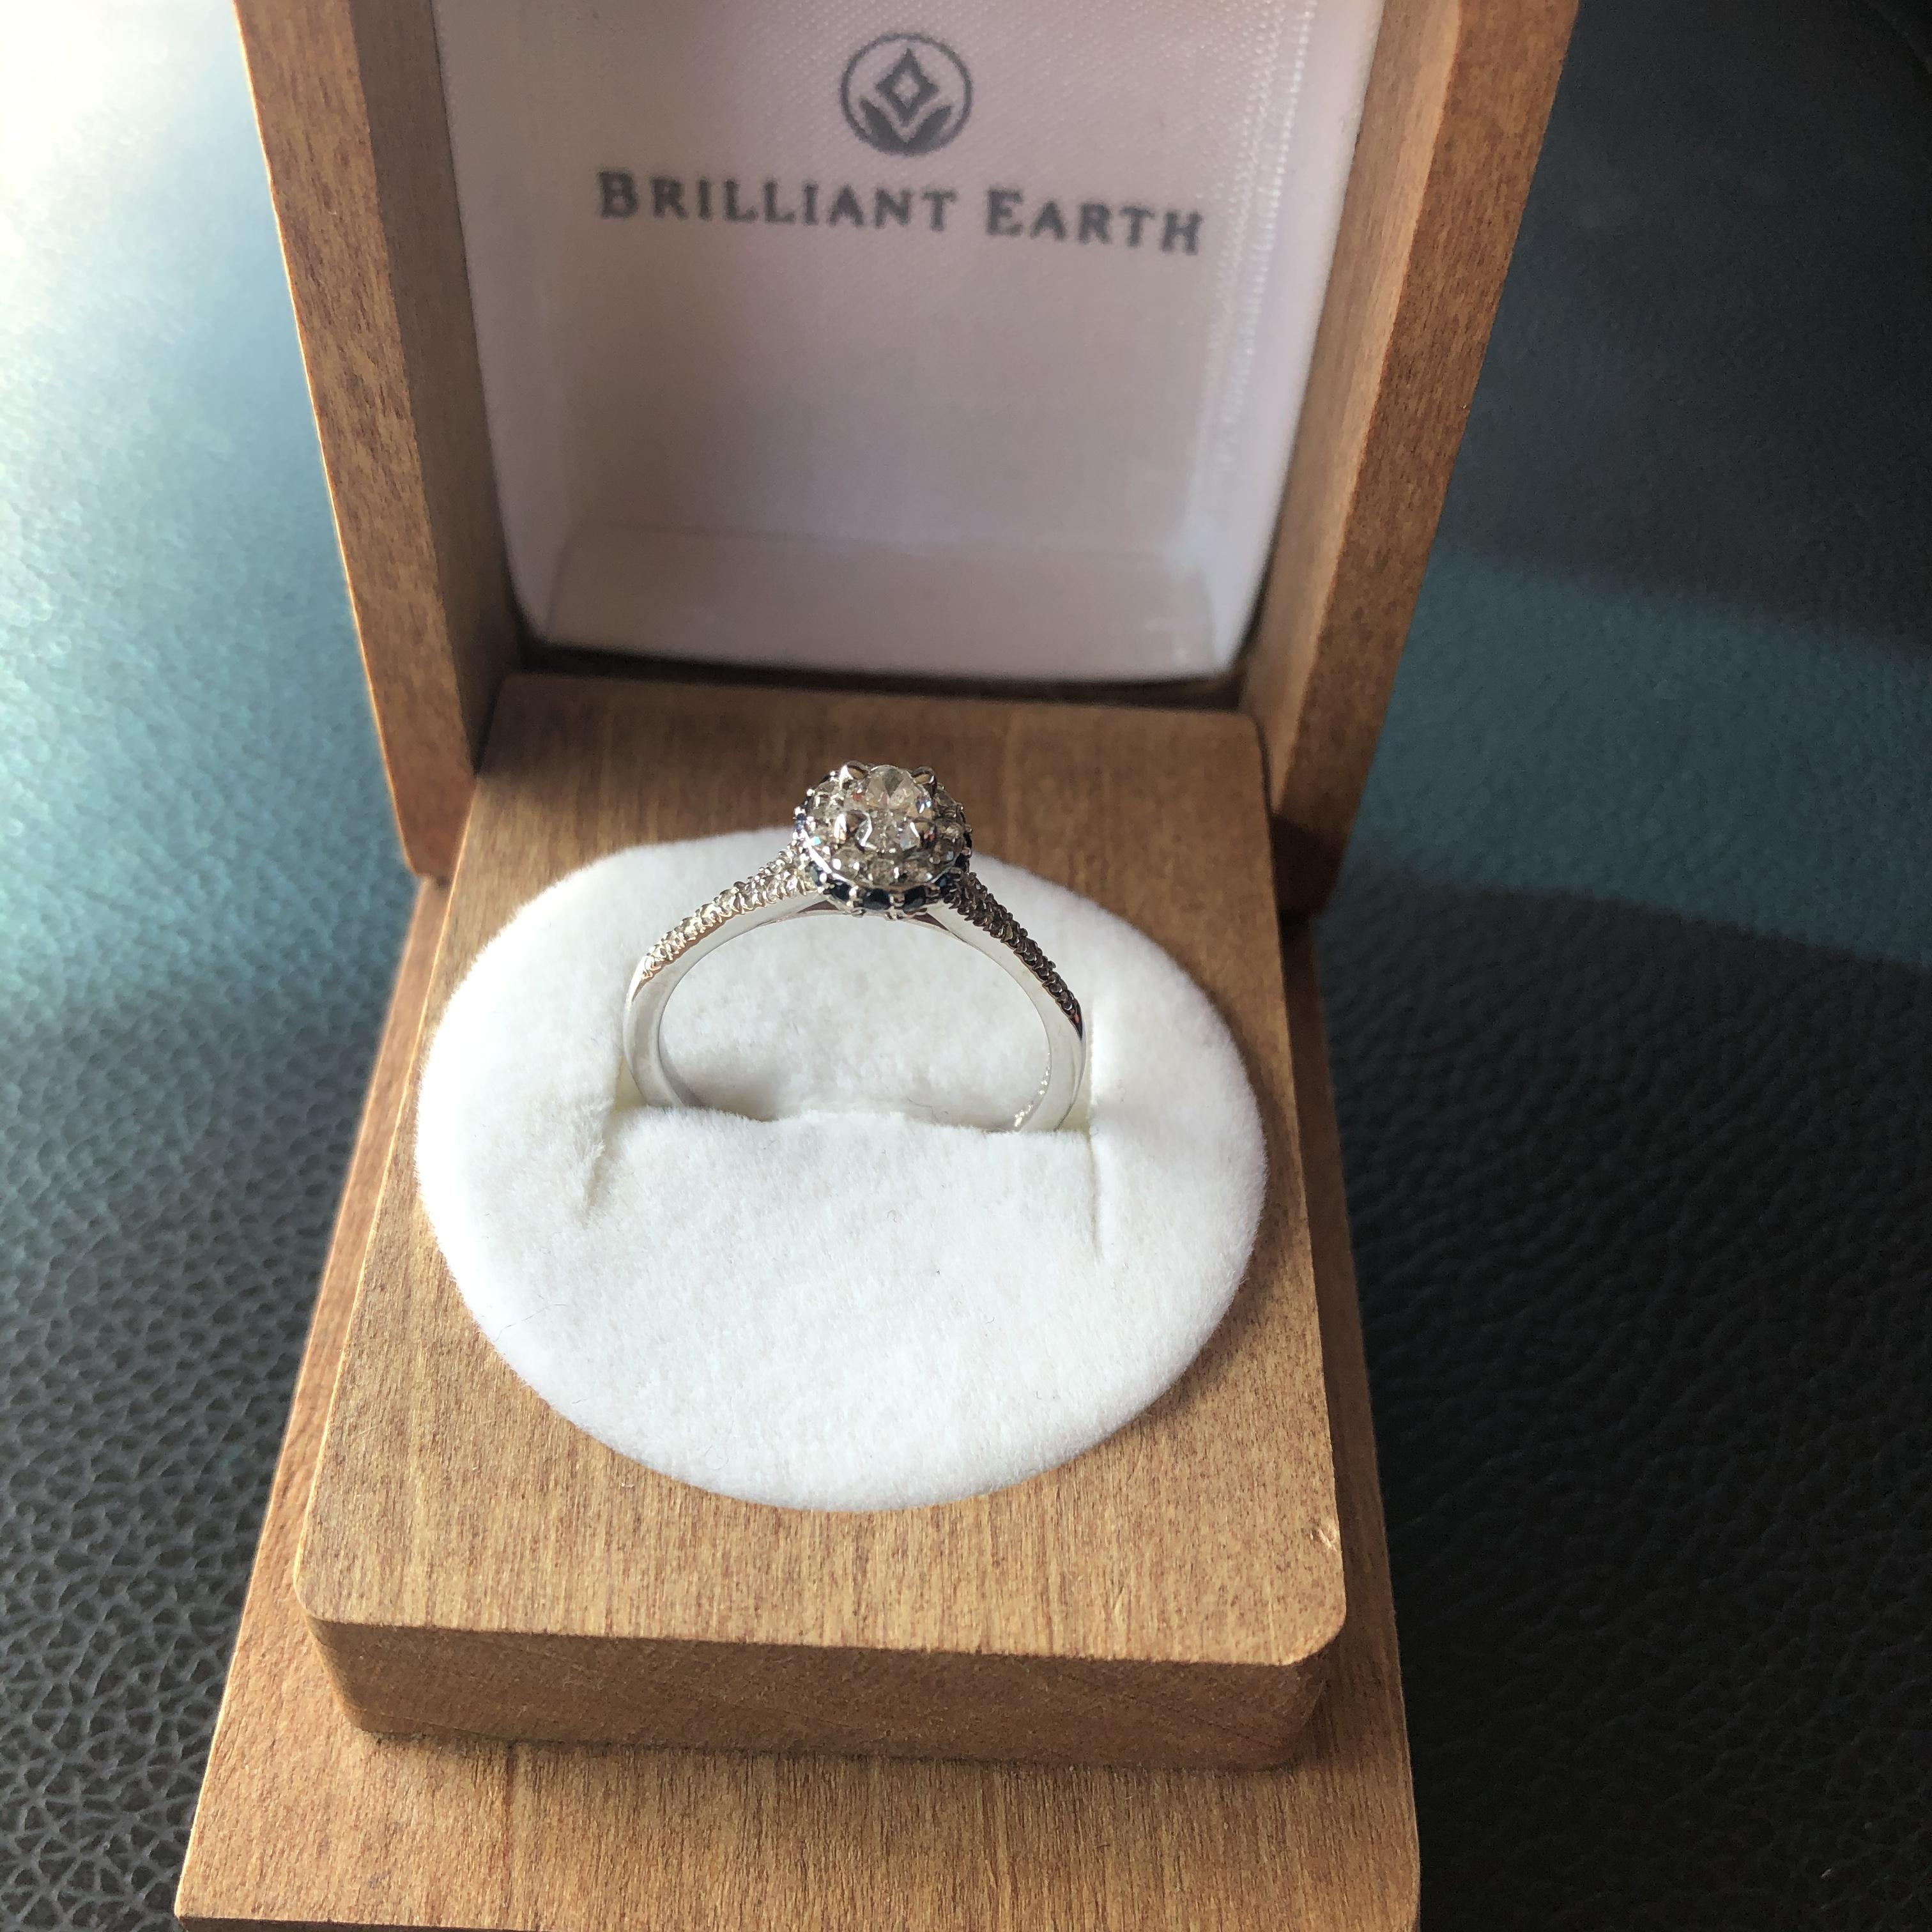 Brilliant Earth, .31 carat,